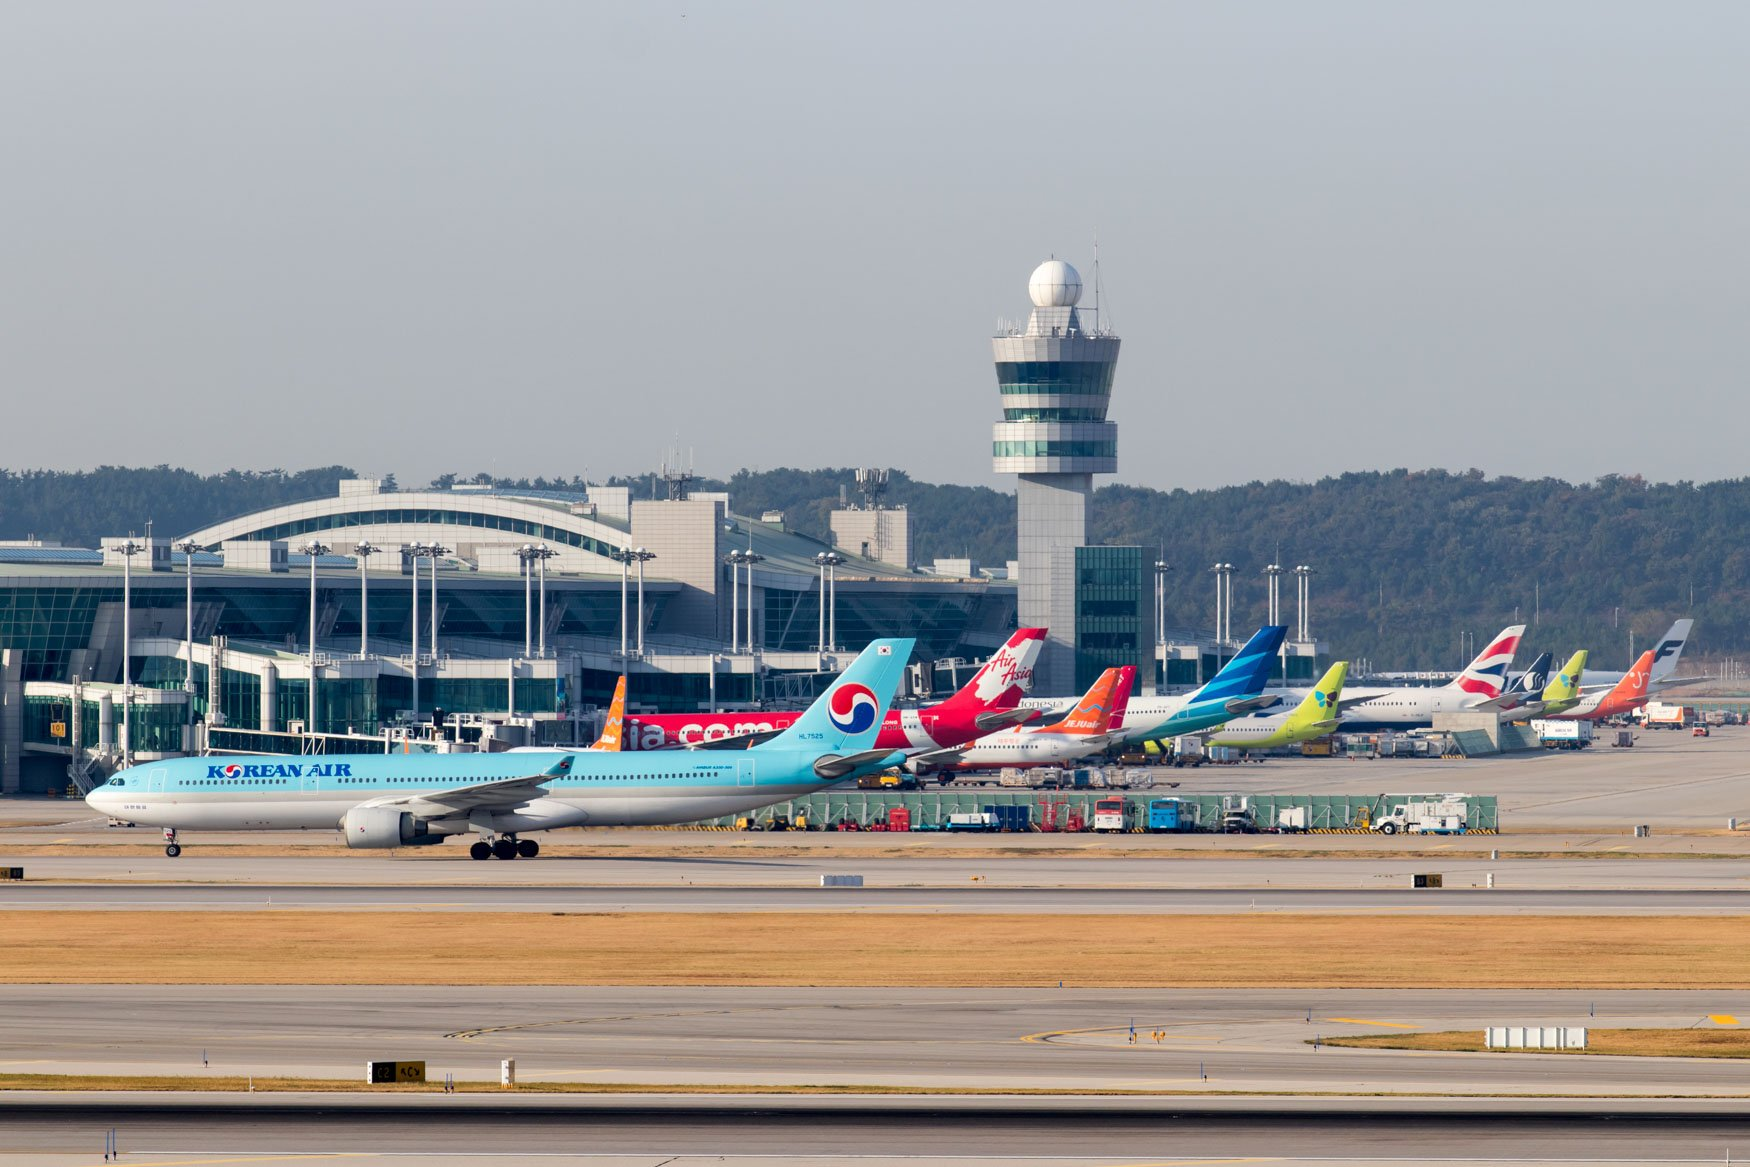 Seoul Incheon Airport Overview